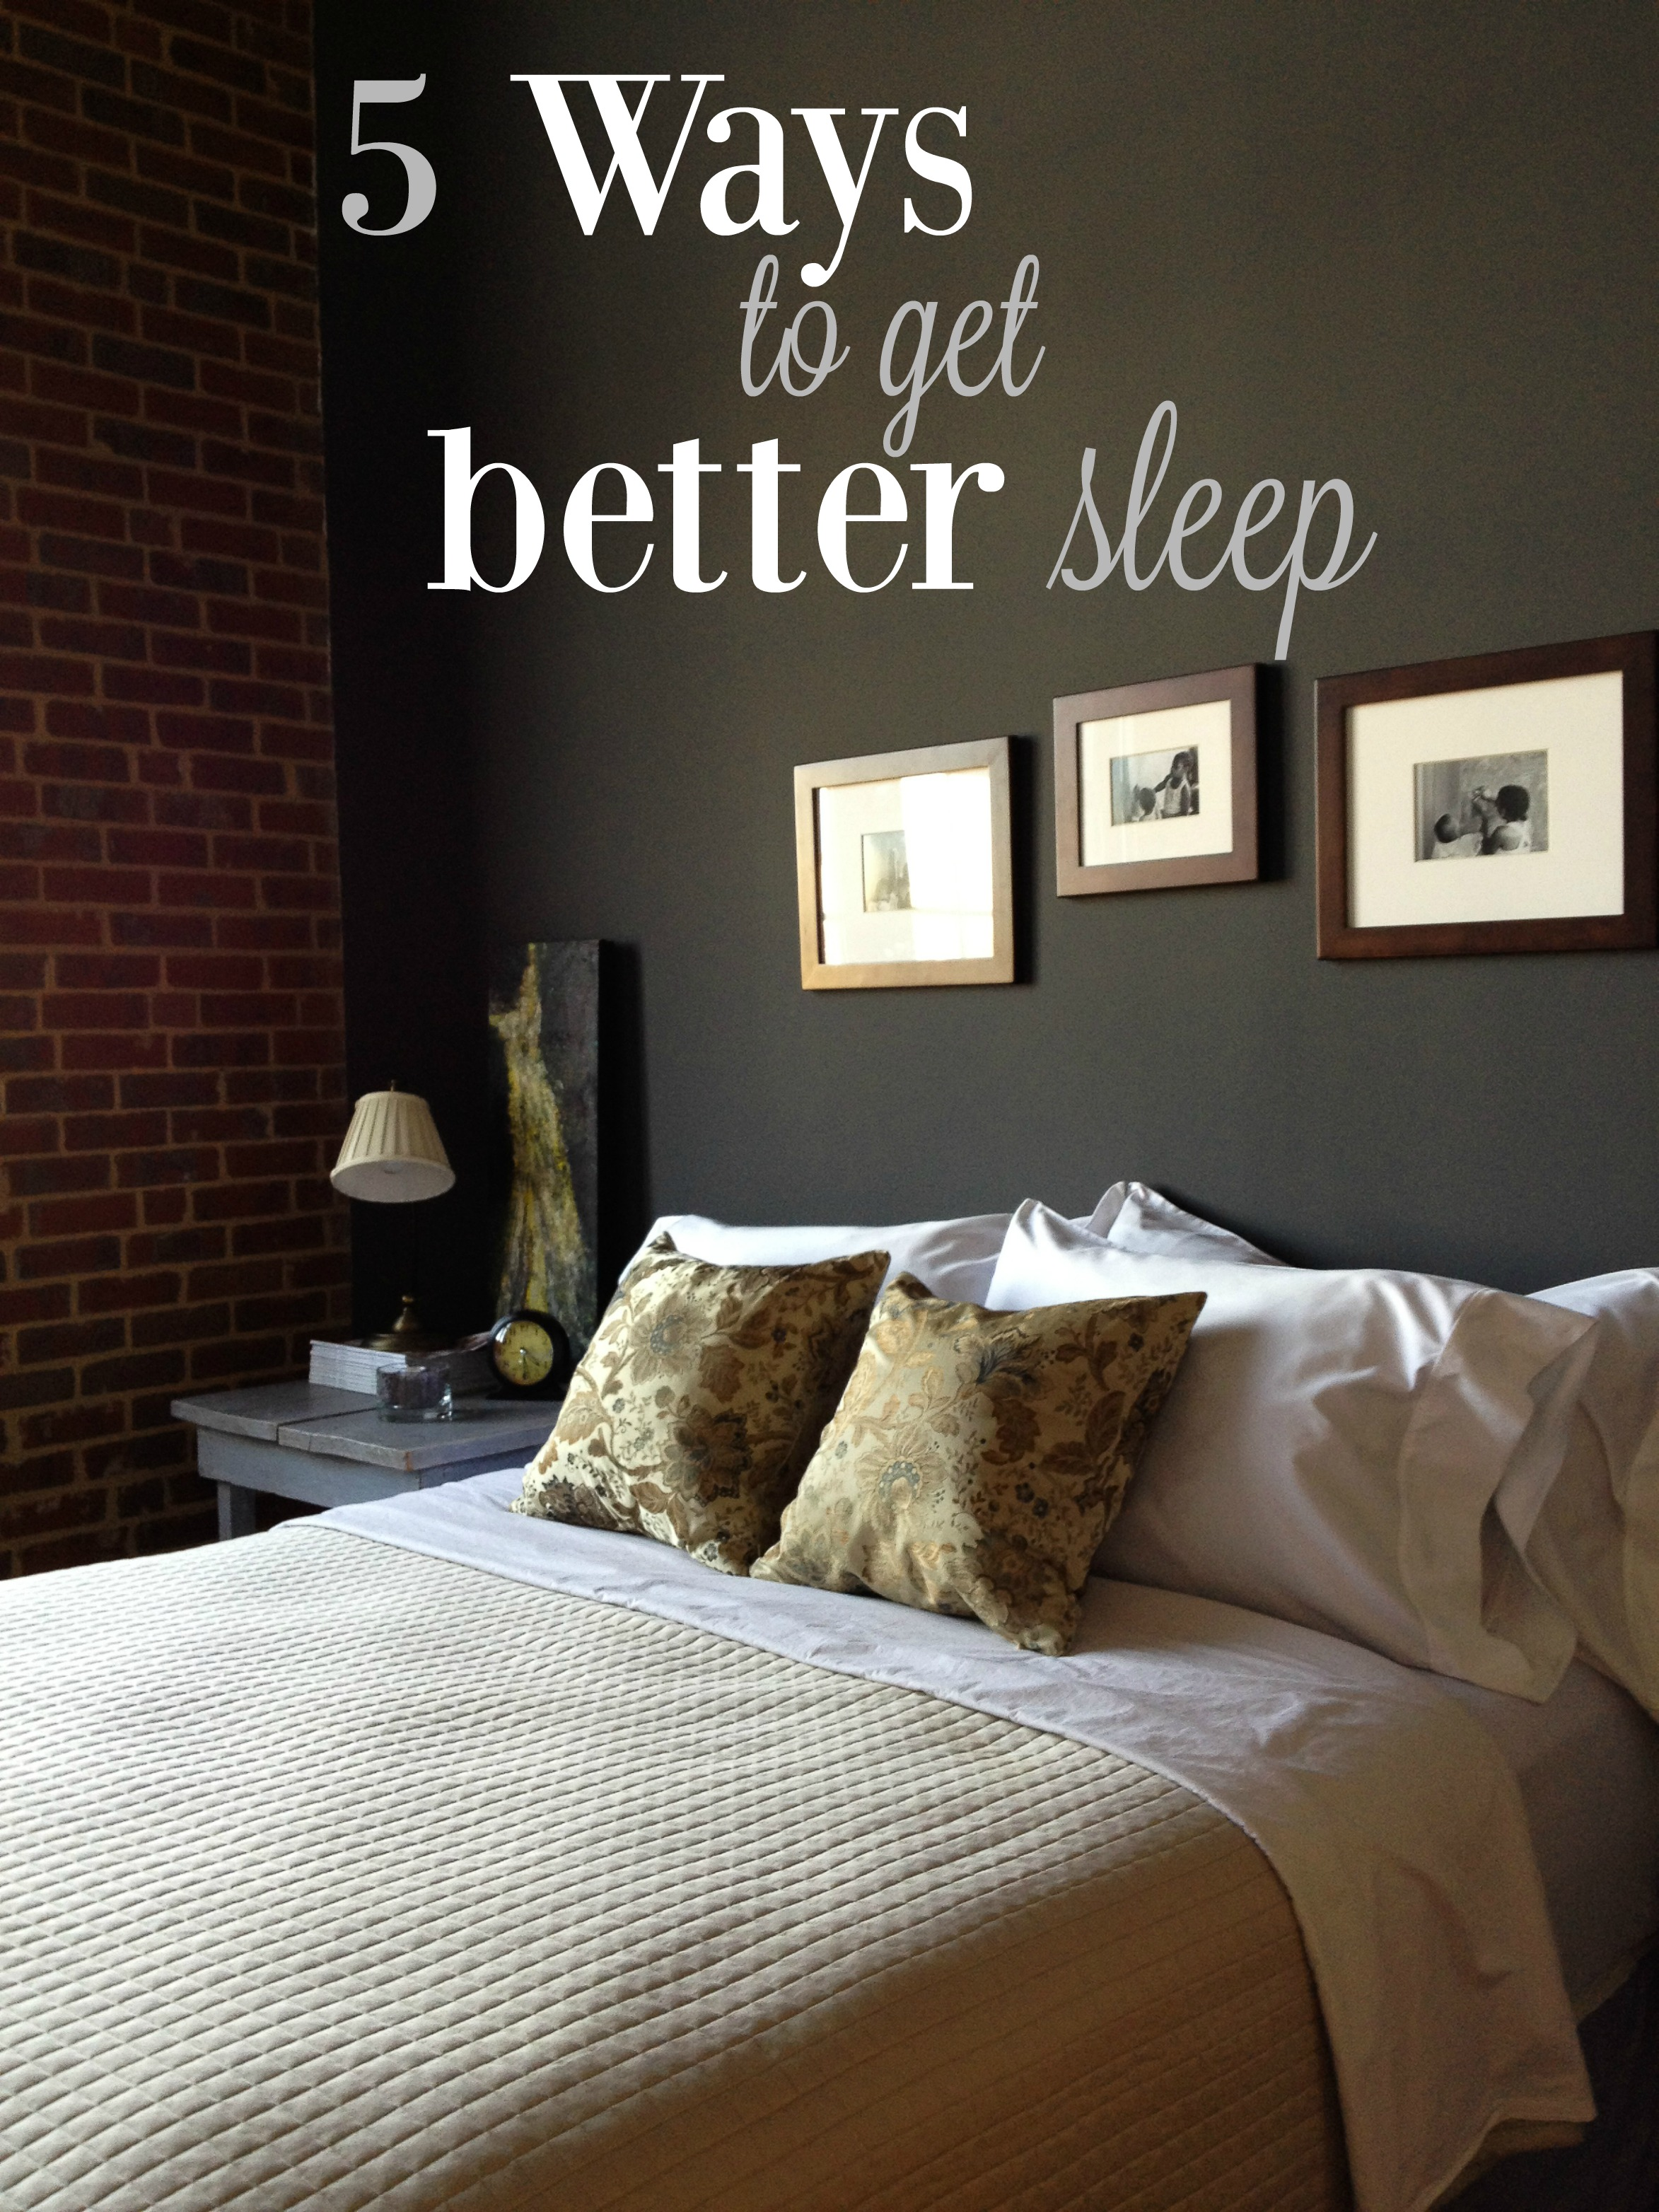 5 Ways to Get Better Sleep